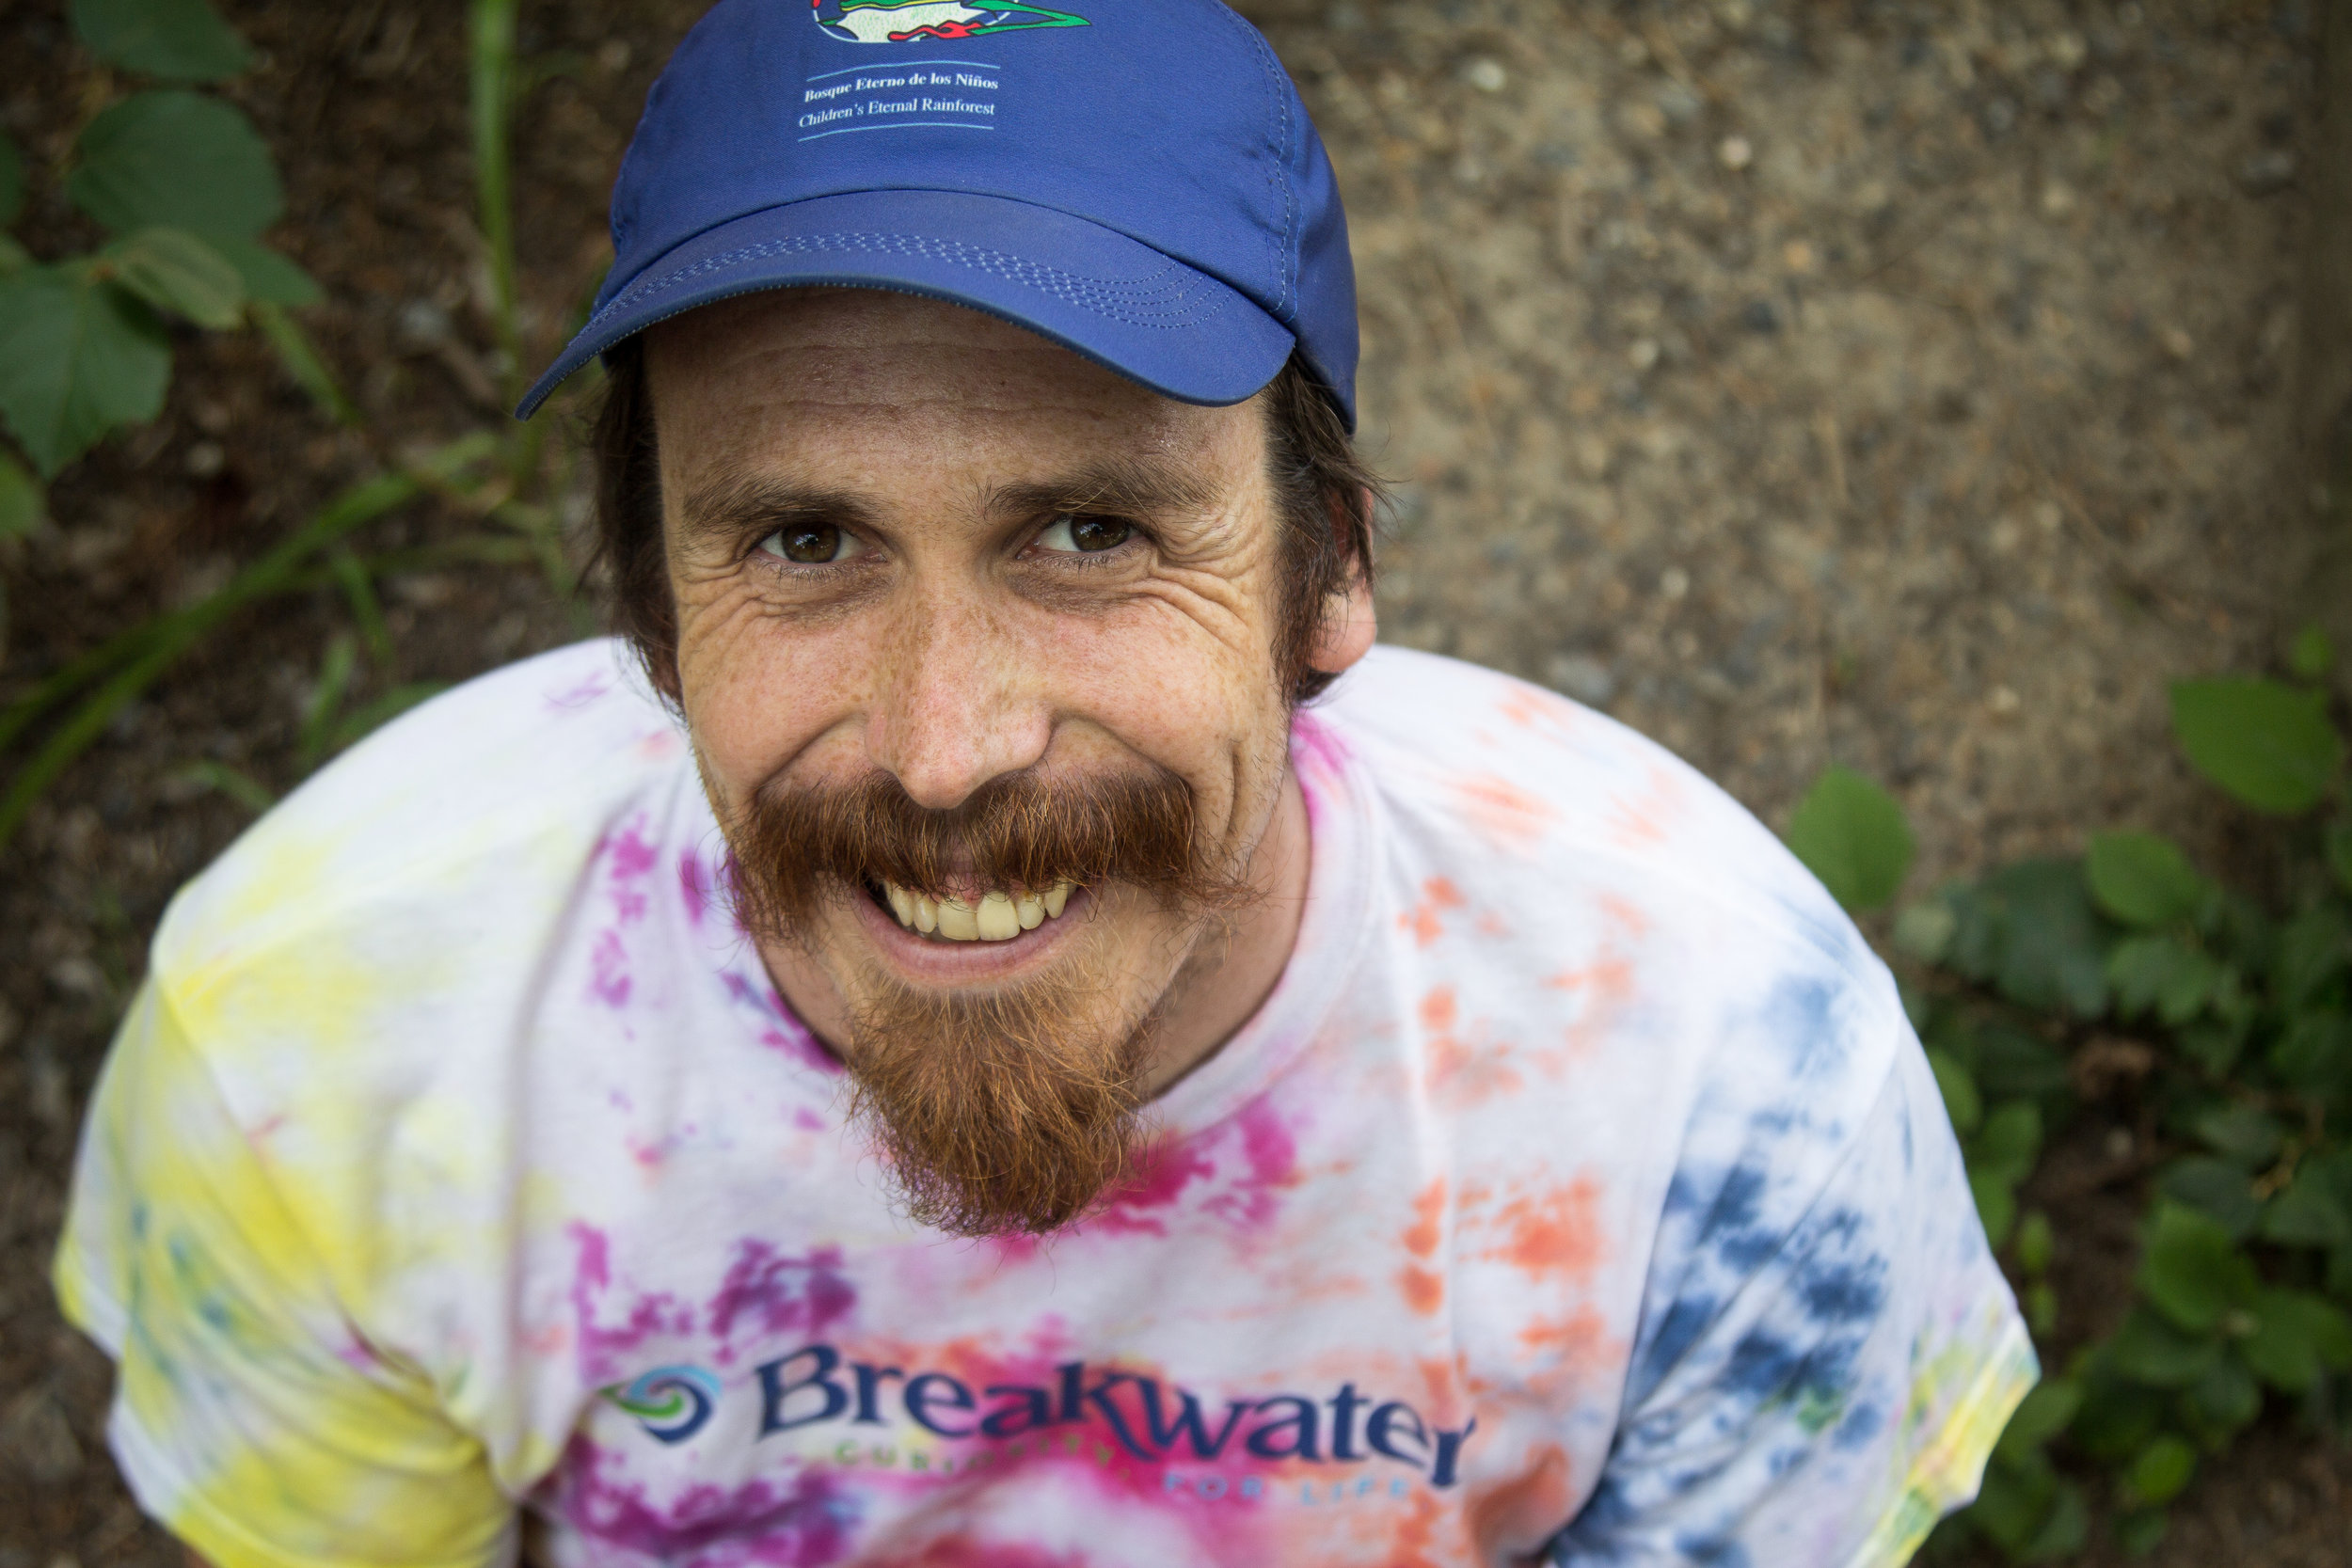 """Patrick """"Fitz"""" Fitzgibbons - K-8 Science and Adventure pfitzgibbons@breakwaterschool.orG    """"Fitz"""", as the students know him, is an avid life long learner. He came to Breakwater in 2012 and immediately fell in love with the school, the teaching philosophy and the community. Fitz has filled a variety of roles before becoming the Science and Adventure Essentialist. He gets his students outside as much as possible! Before coming to Breakwater Fitz studied Biology at Providence College and then worked for a decade as a naturalist and director of an environmental education center located on Cape Cod called Nature's Classroom."""